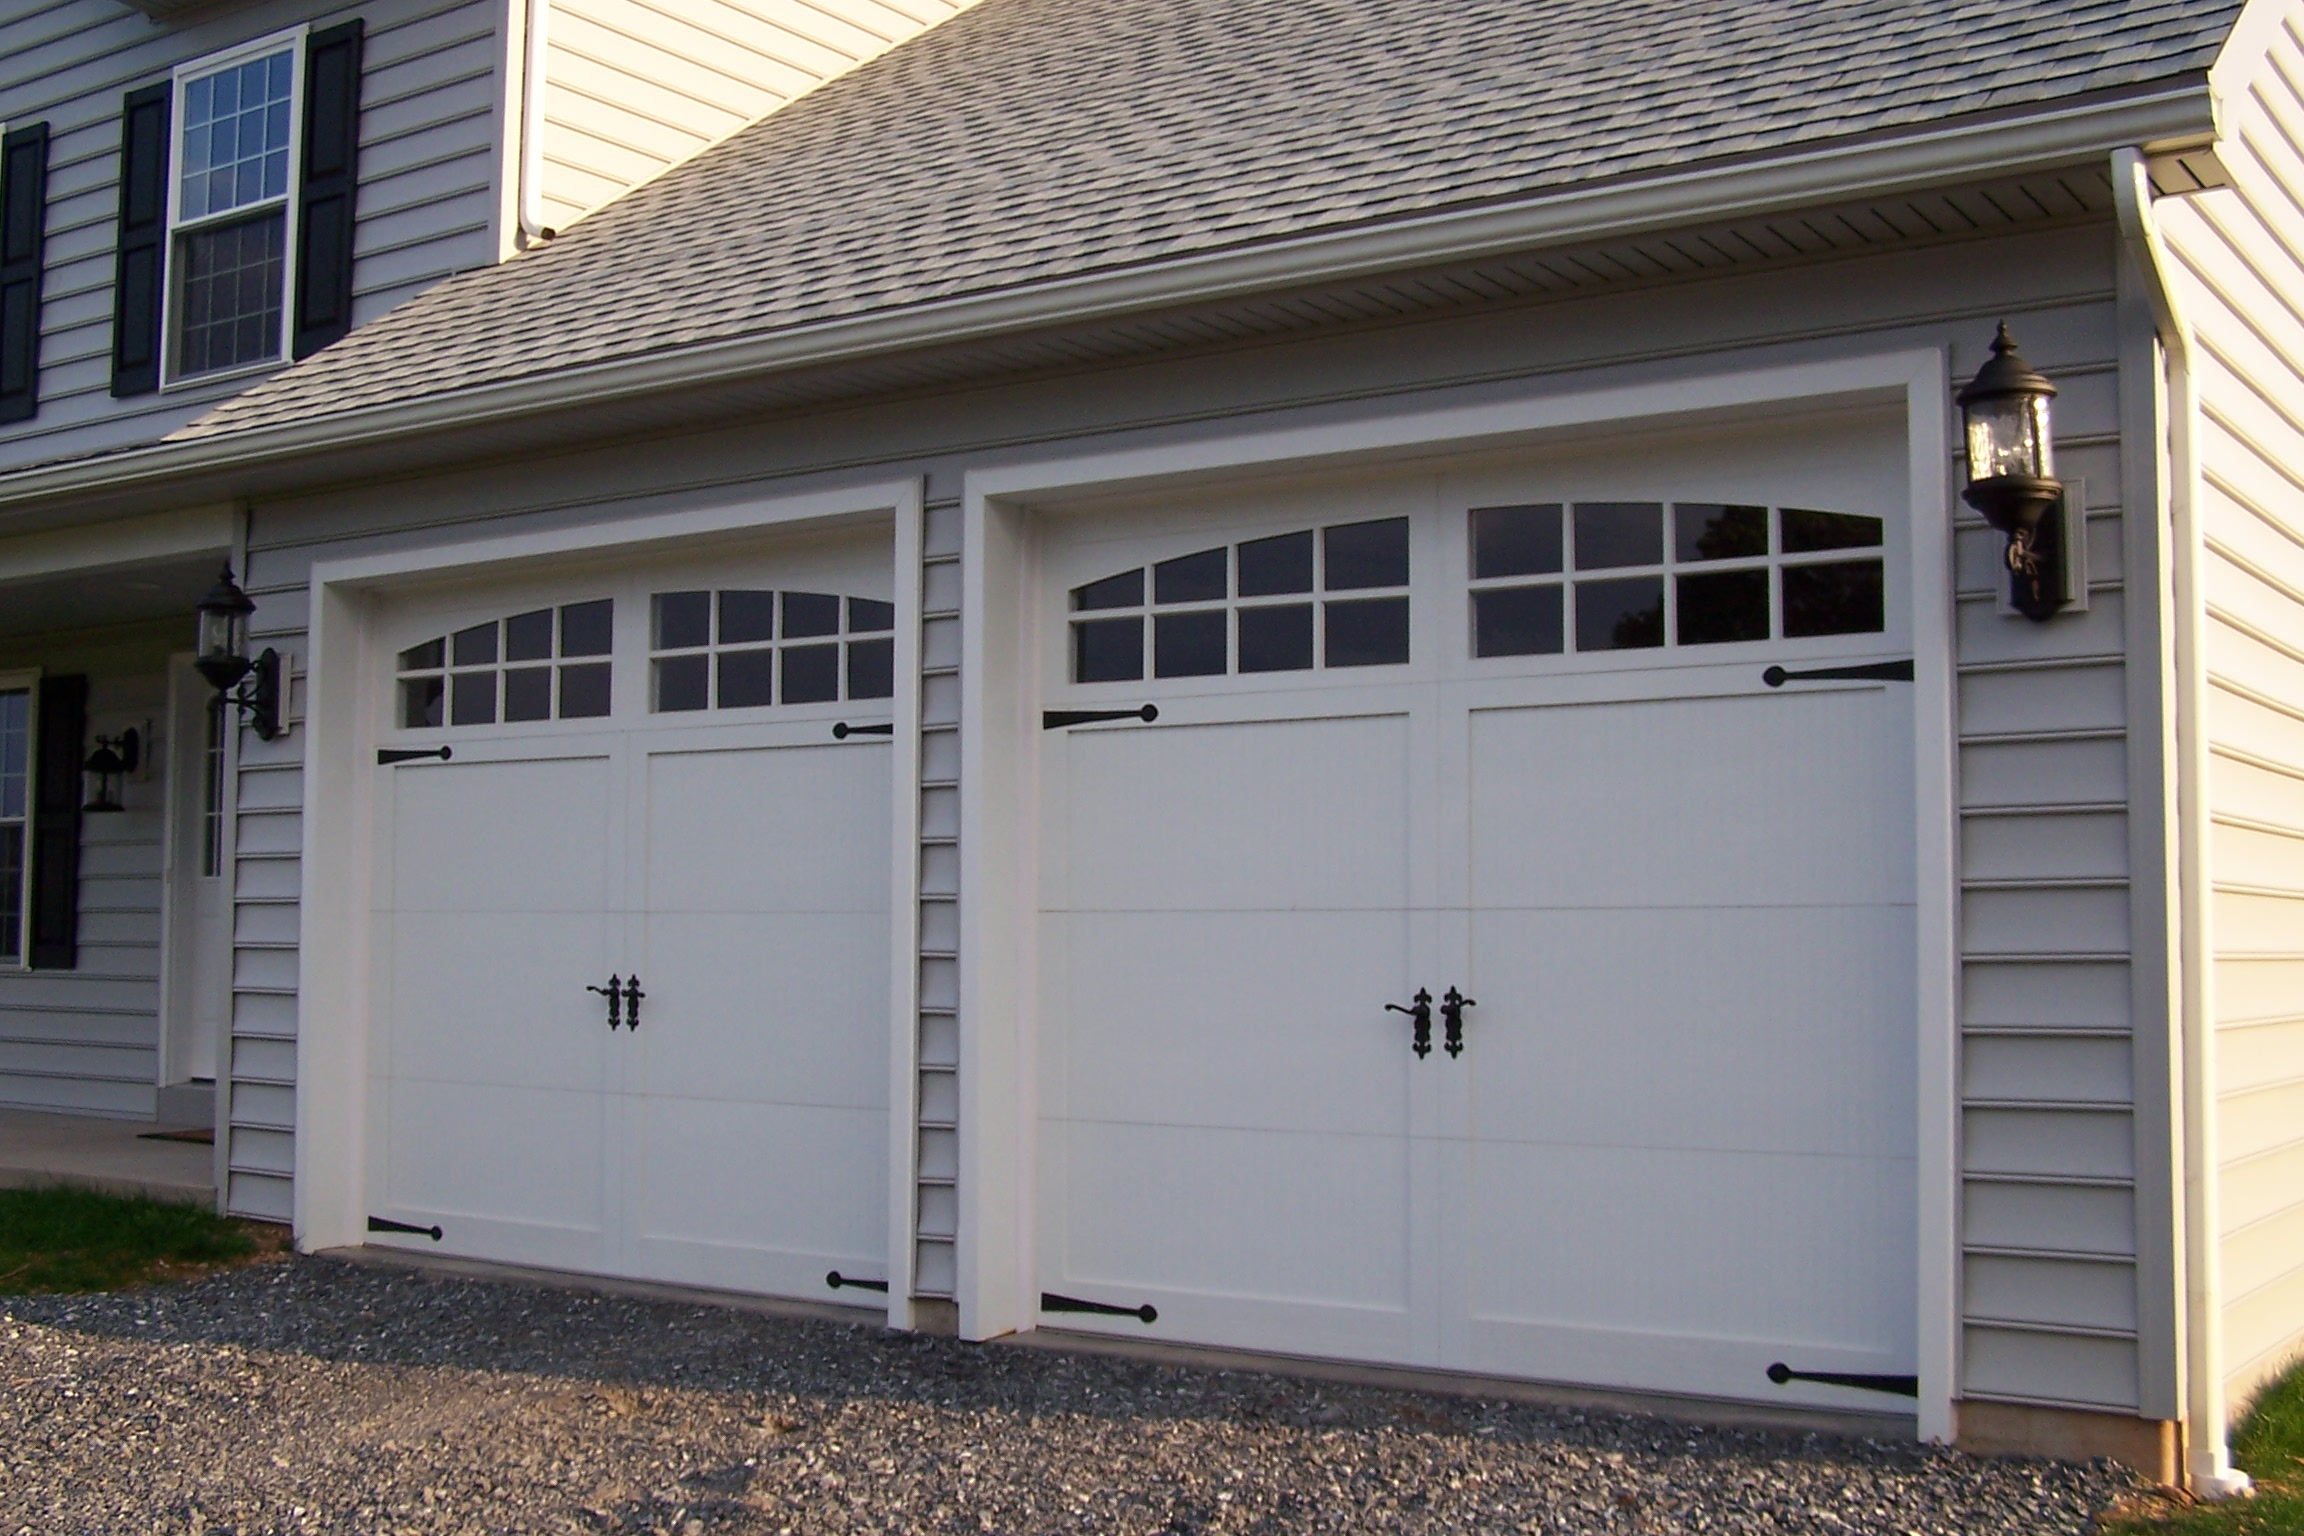 Garage Door Design unusual door designs from brazil part 2 garage doors with style Adorable Sectional Type Cool Amazing Wonderful Creative Garege Door With Doube Door Design With Modern White